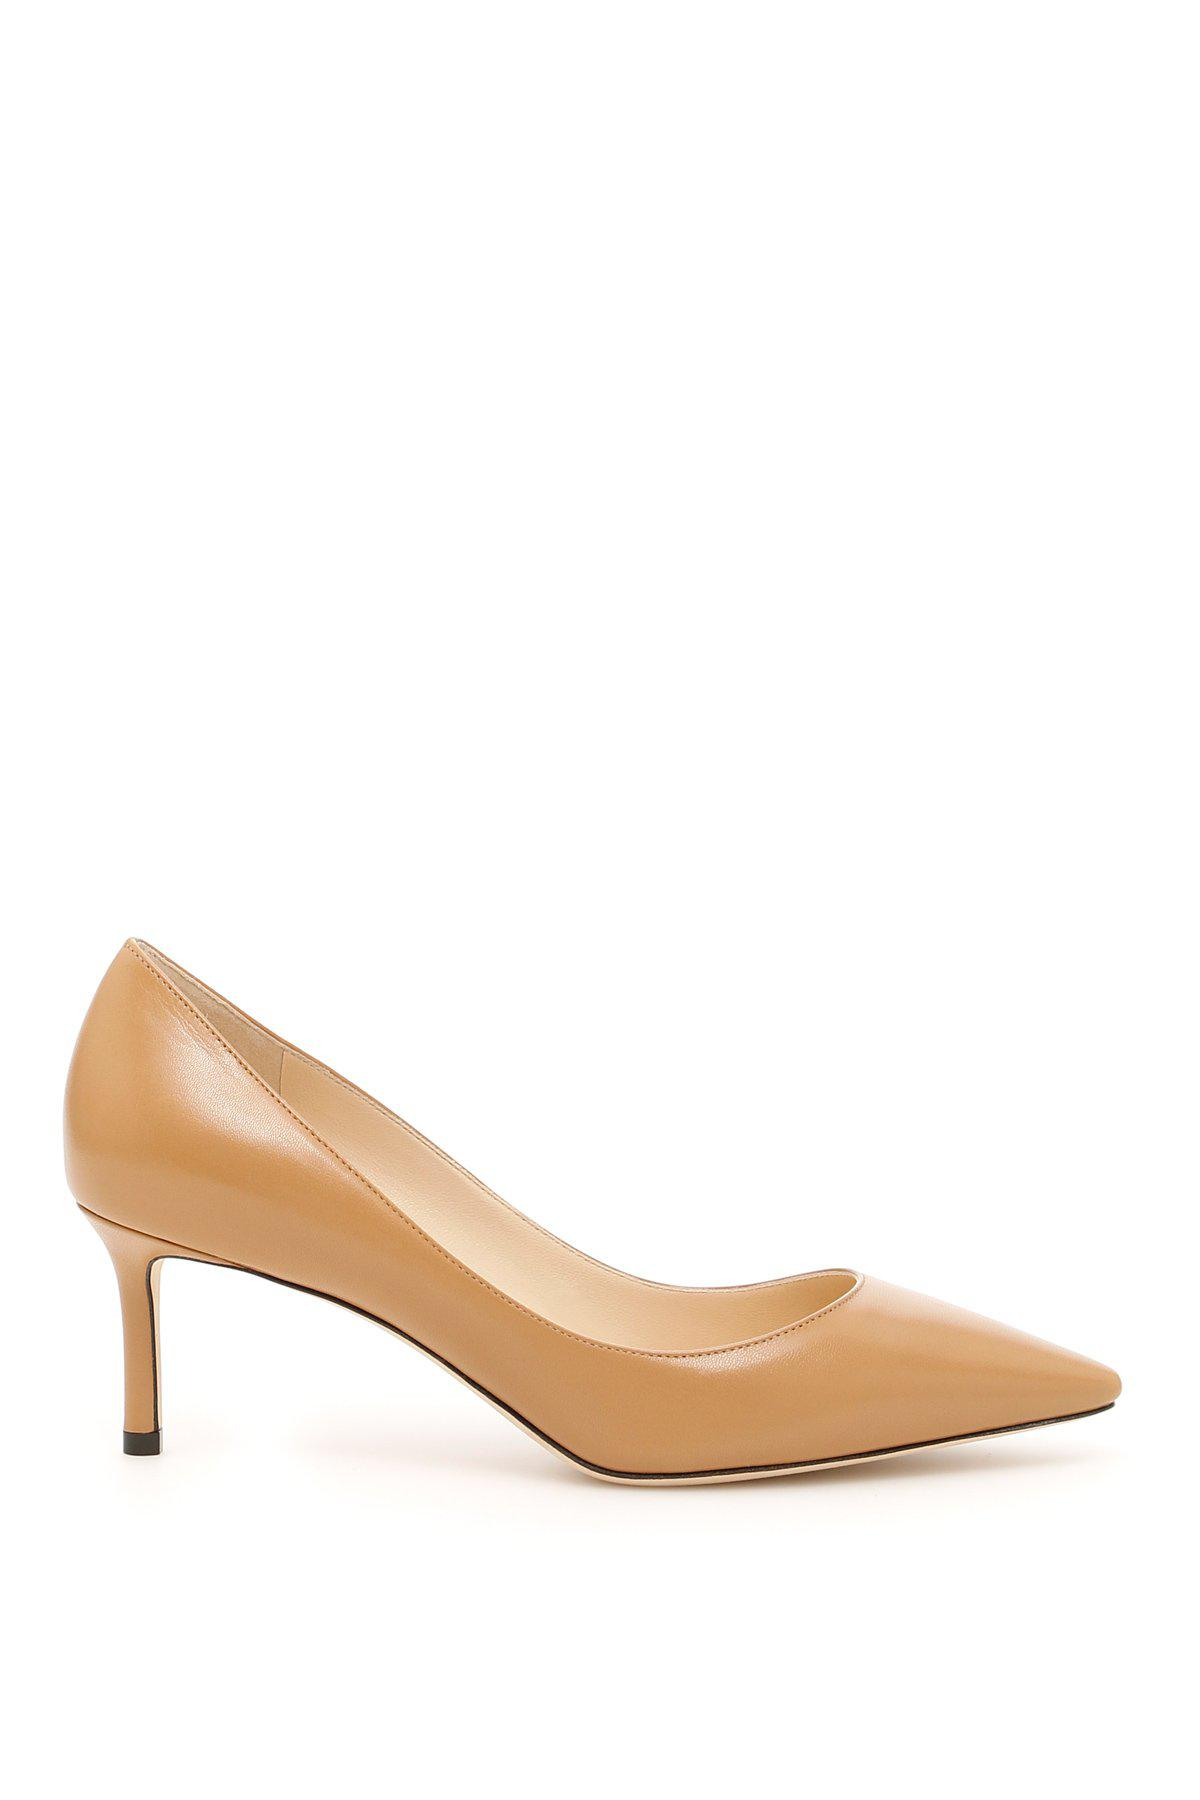 cb1e9a4a0c4 Lyst - Jimmy Choo Romy 60 Pumps in Natural